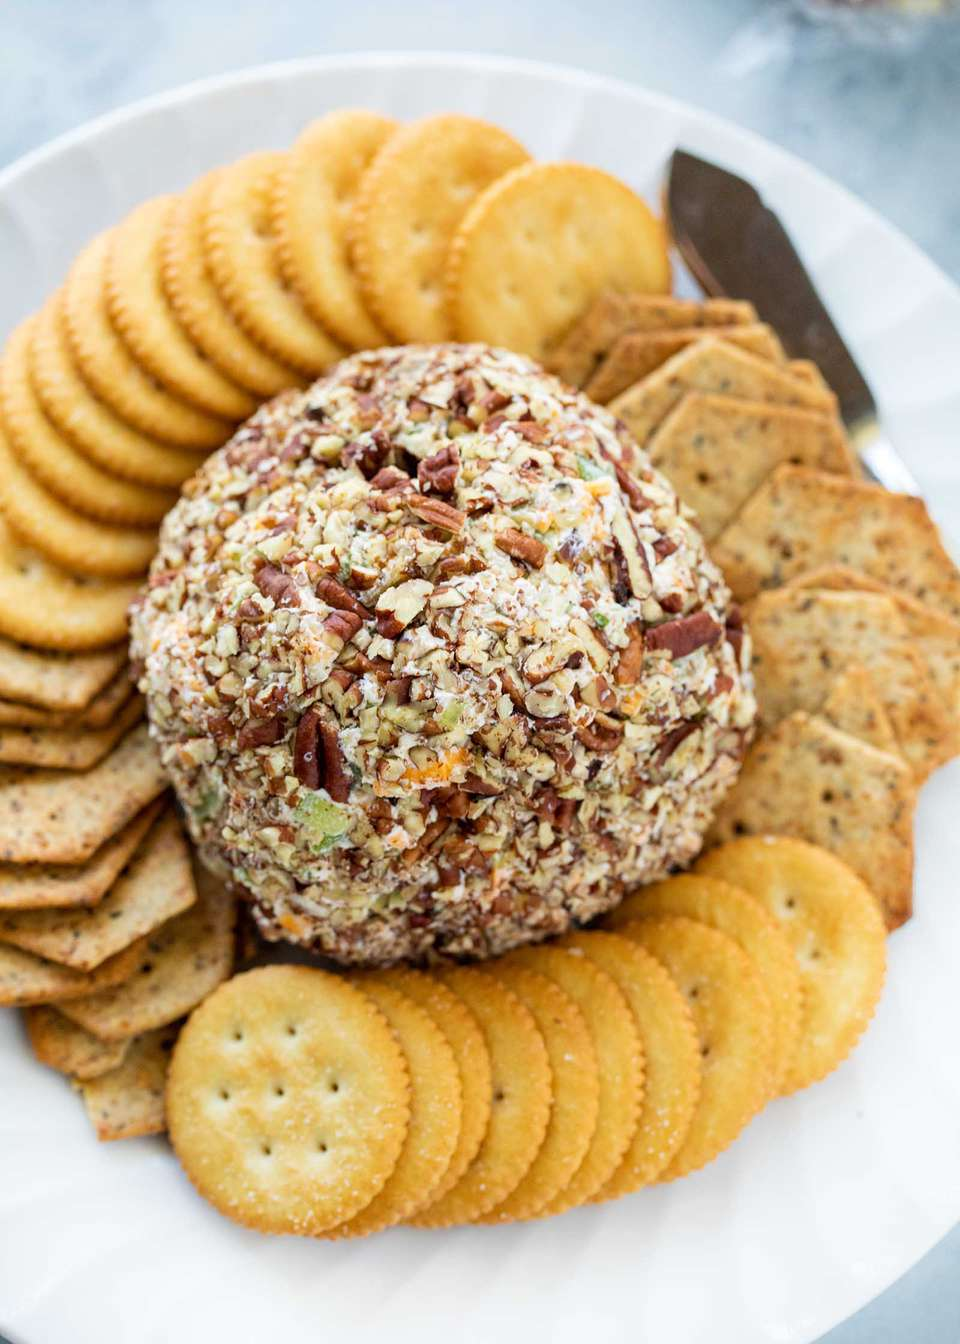 Classic cheeseball in the center of a platter and surrounded by crackers.